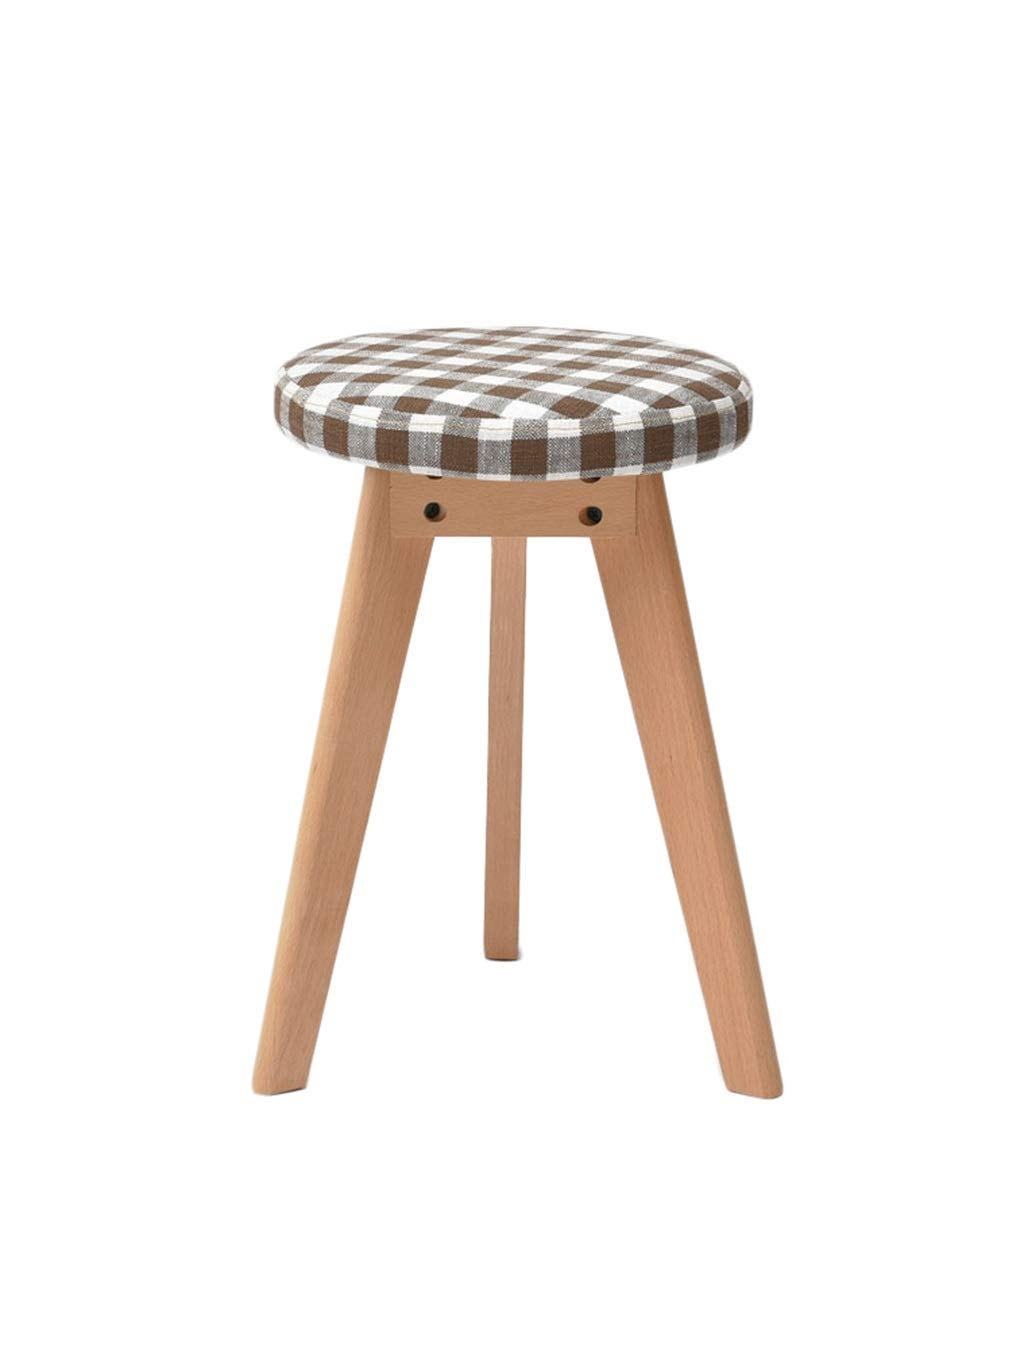 Lattice ZH STOOLS Round Stool, Solid Wood Small Bench Handmade Cotton Linen Multifunction Ergonomics Change shoes Stool for Living Room Entrance (color   Green)